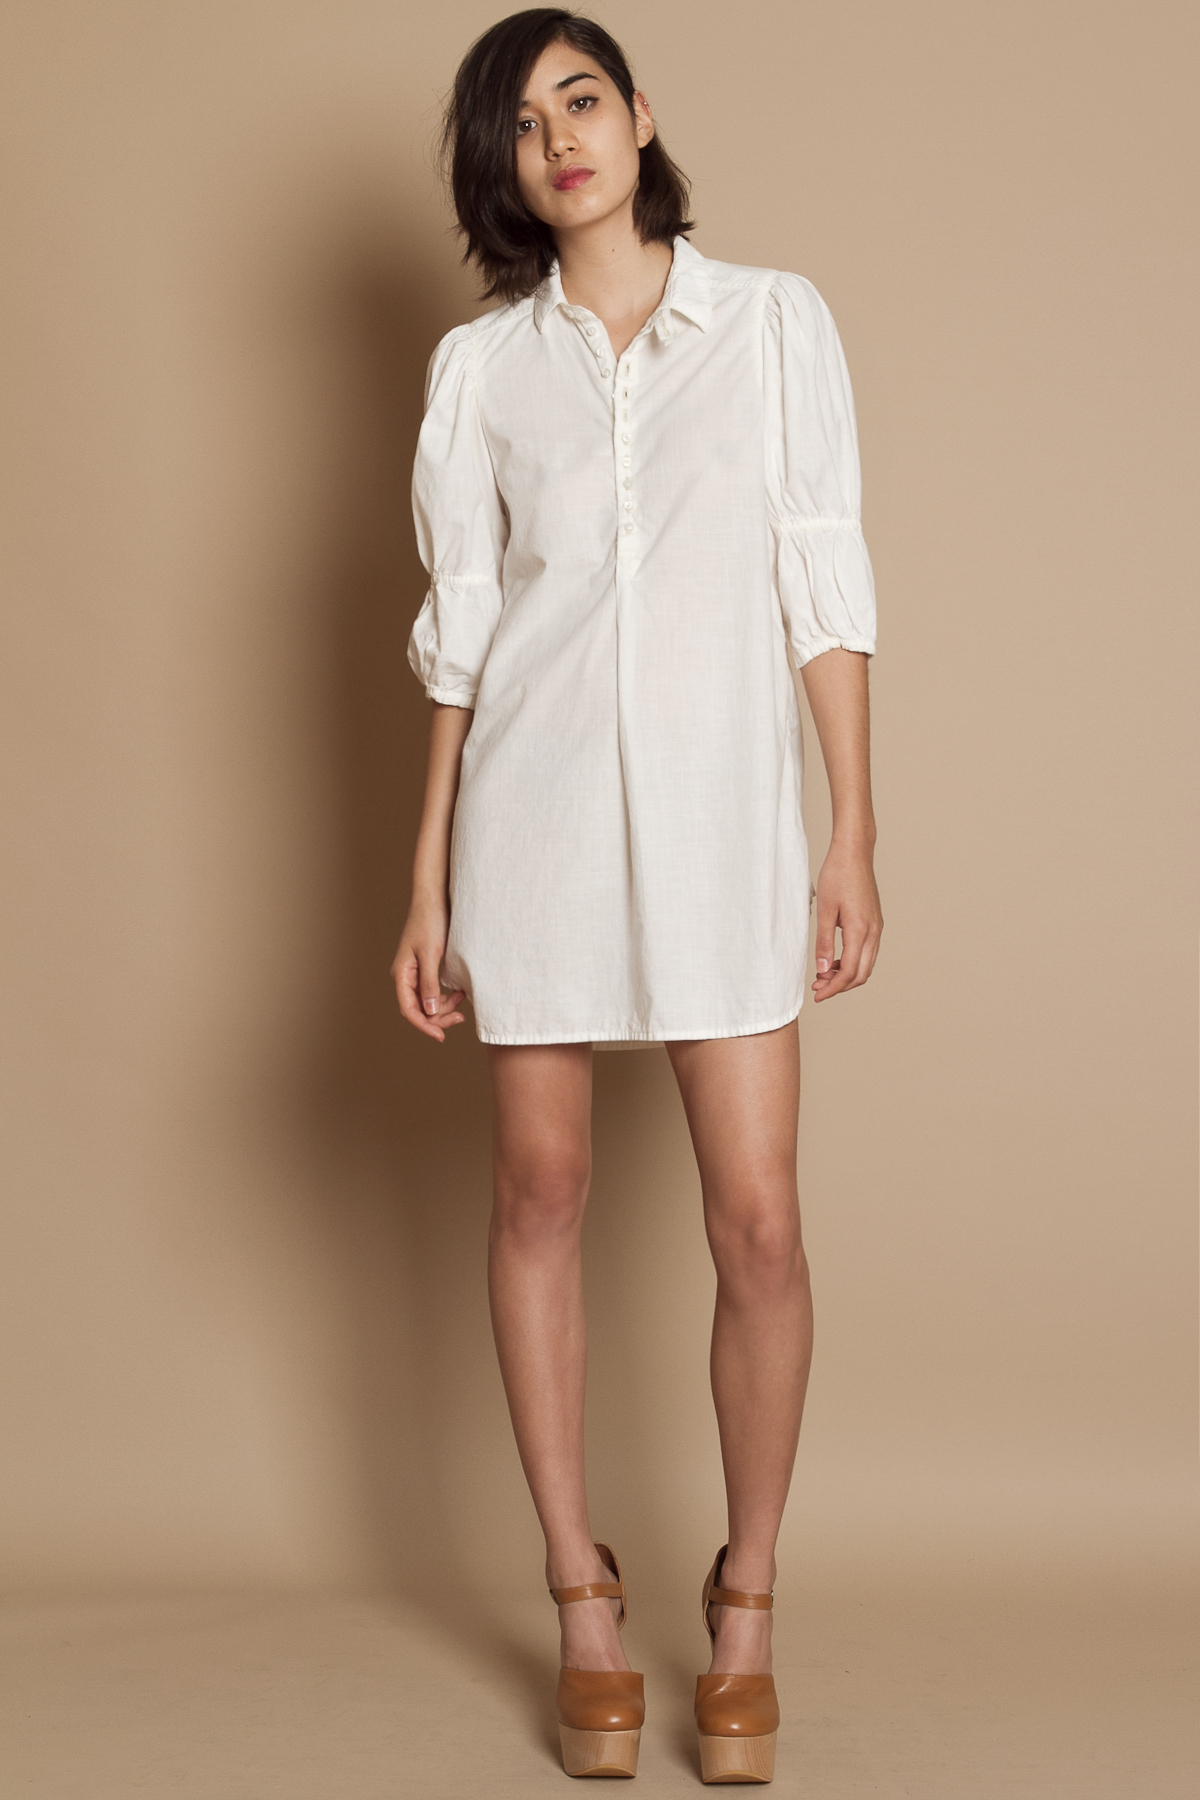 Creative Home White Dresses MM6 Maison Margiela Womens Midi Shirt Dress With Cape Tie Sleeve  White  IT 44UK 12 Womens White Long Cut Shirt Dress From The Maison Martin Margiela Diffusion Line, MM6 Maison Margiela Crafted